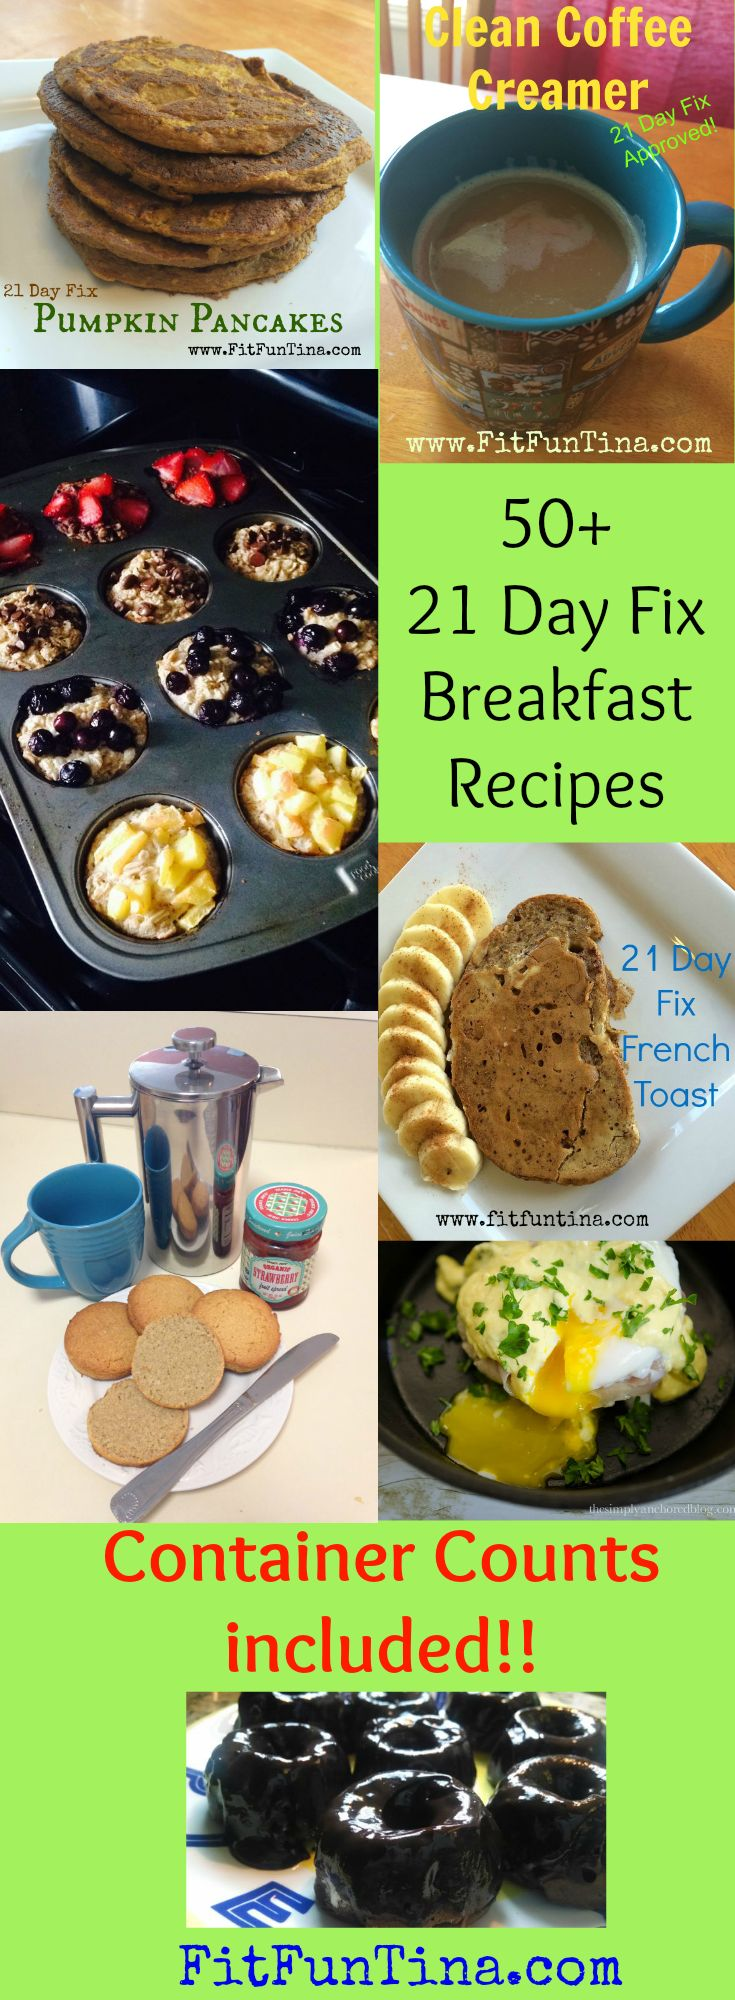 50+ 21 Day Fix Breakfast Ideas. Sorted by preparation method, and with container counts included, your breakfast planning just got easier! For more recipes and 21 Day Fix Resources, head to www.FitFunTina.com